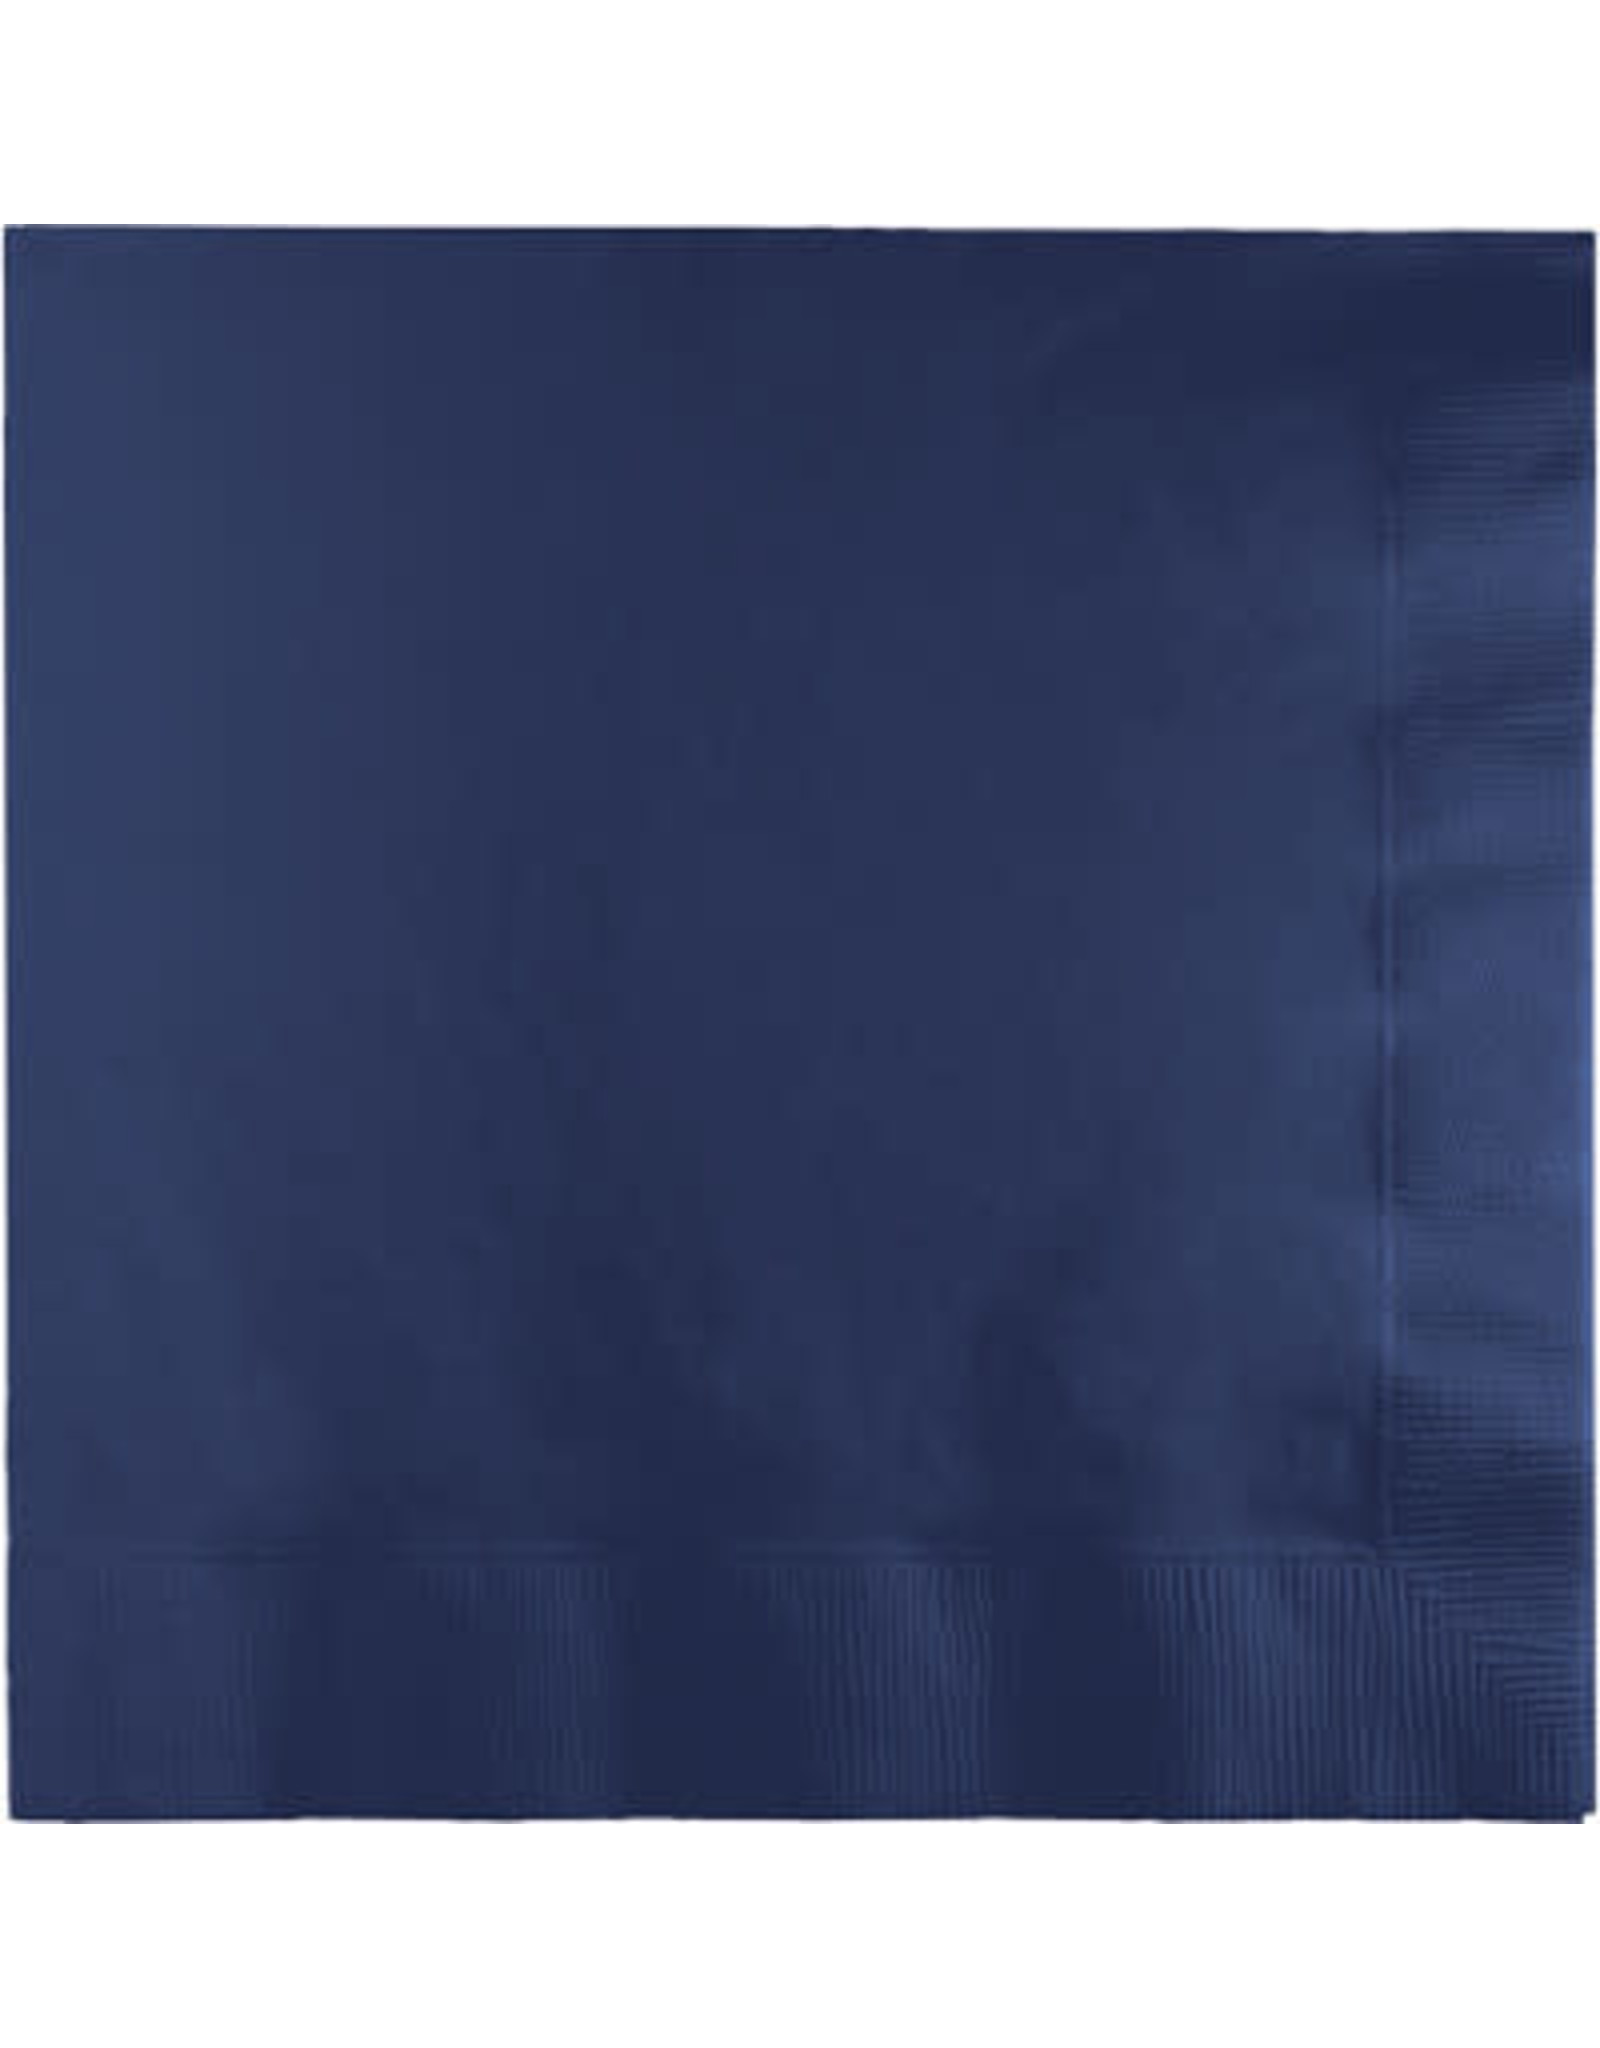 Touch of Color NAVY BLUE LUNCH NAPKINS